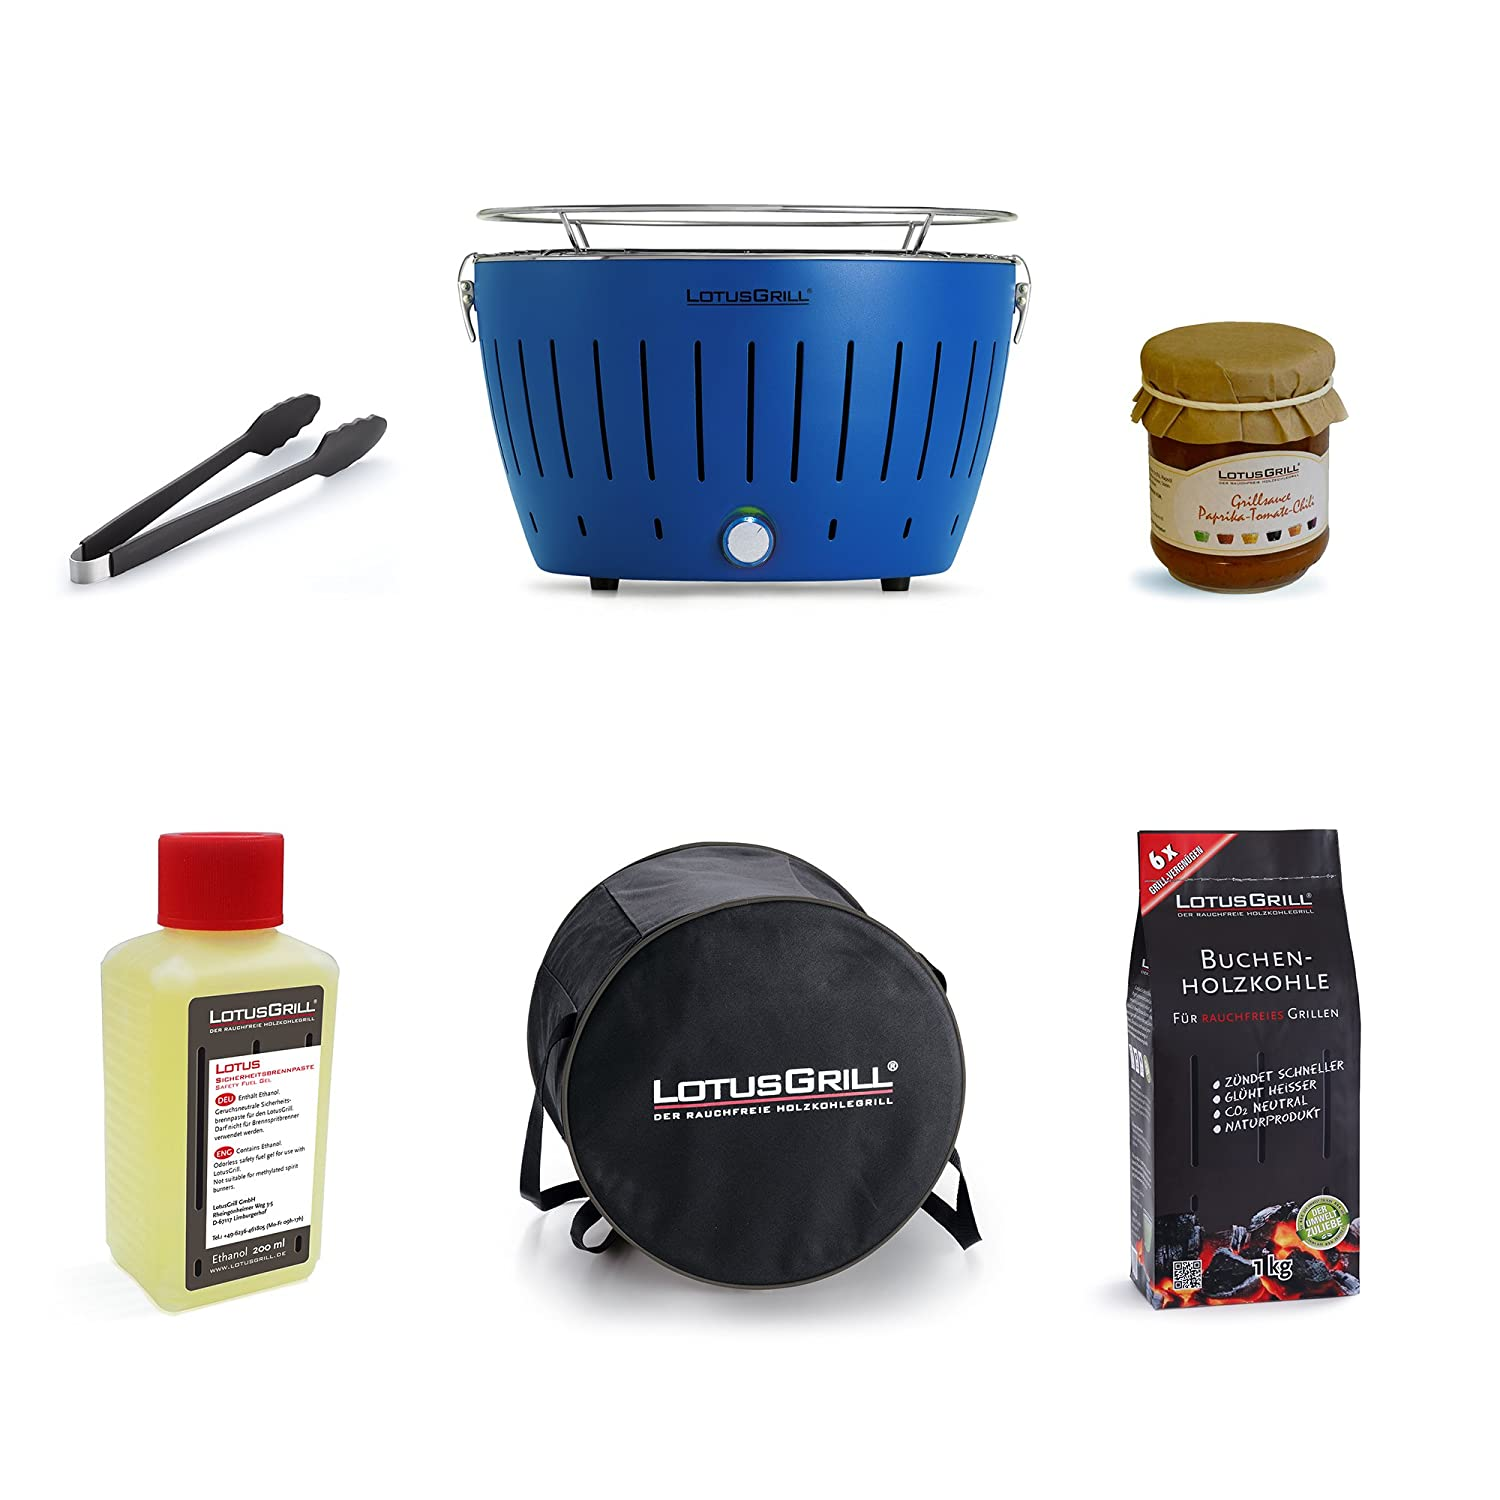 LotusGrill Starter Kit 1 x Flame Red LotusGrill, 1 x Beech Charcoal 1 kg, 1 x Lighting Gel 200 ml, 1 Flame Red LotusGrill Grill Tongs, 1 x Carrying Case, 1 x LotusGrill Special Grill Sauce – Smoke-Free Charcoal Tabletop Grill / Grill only the latest techn